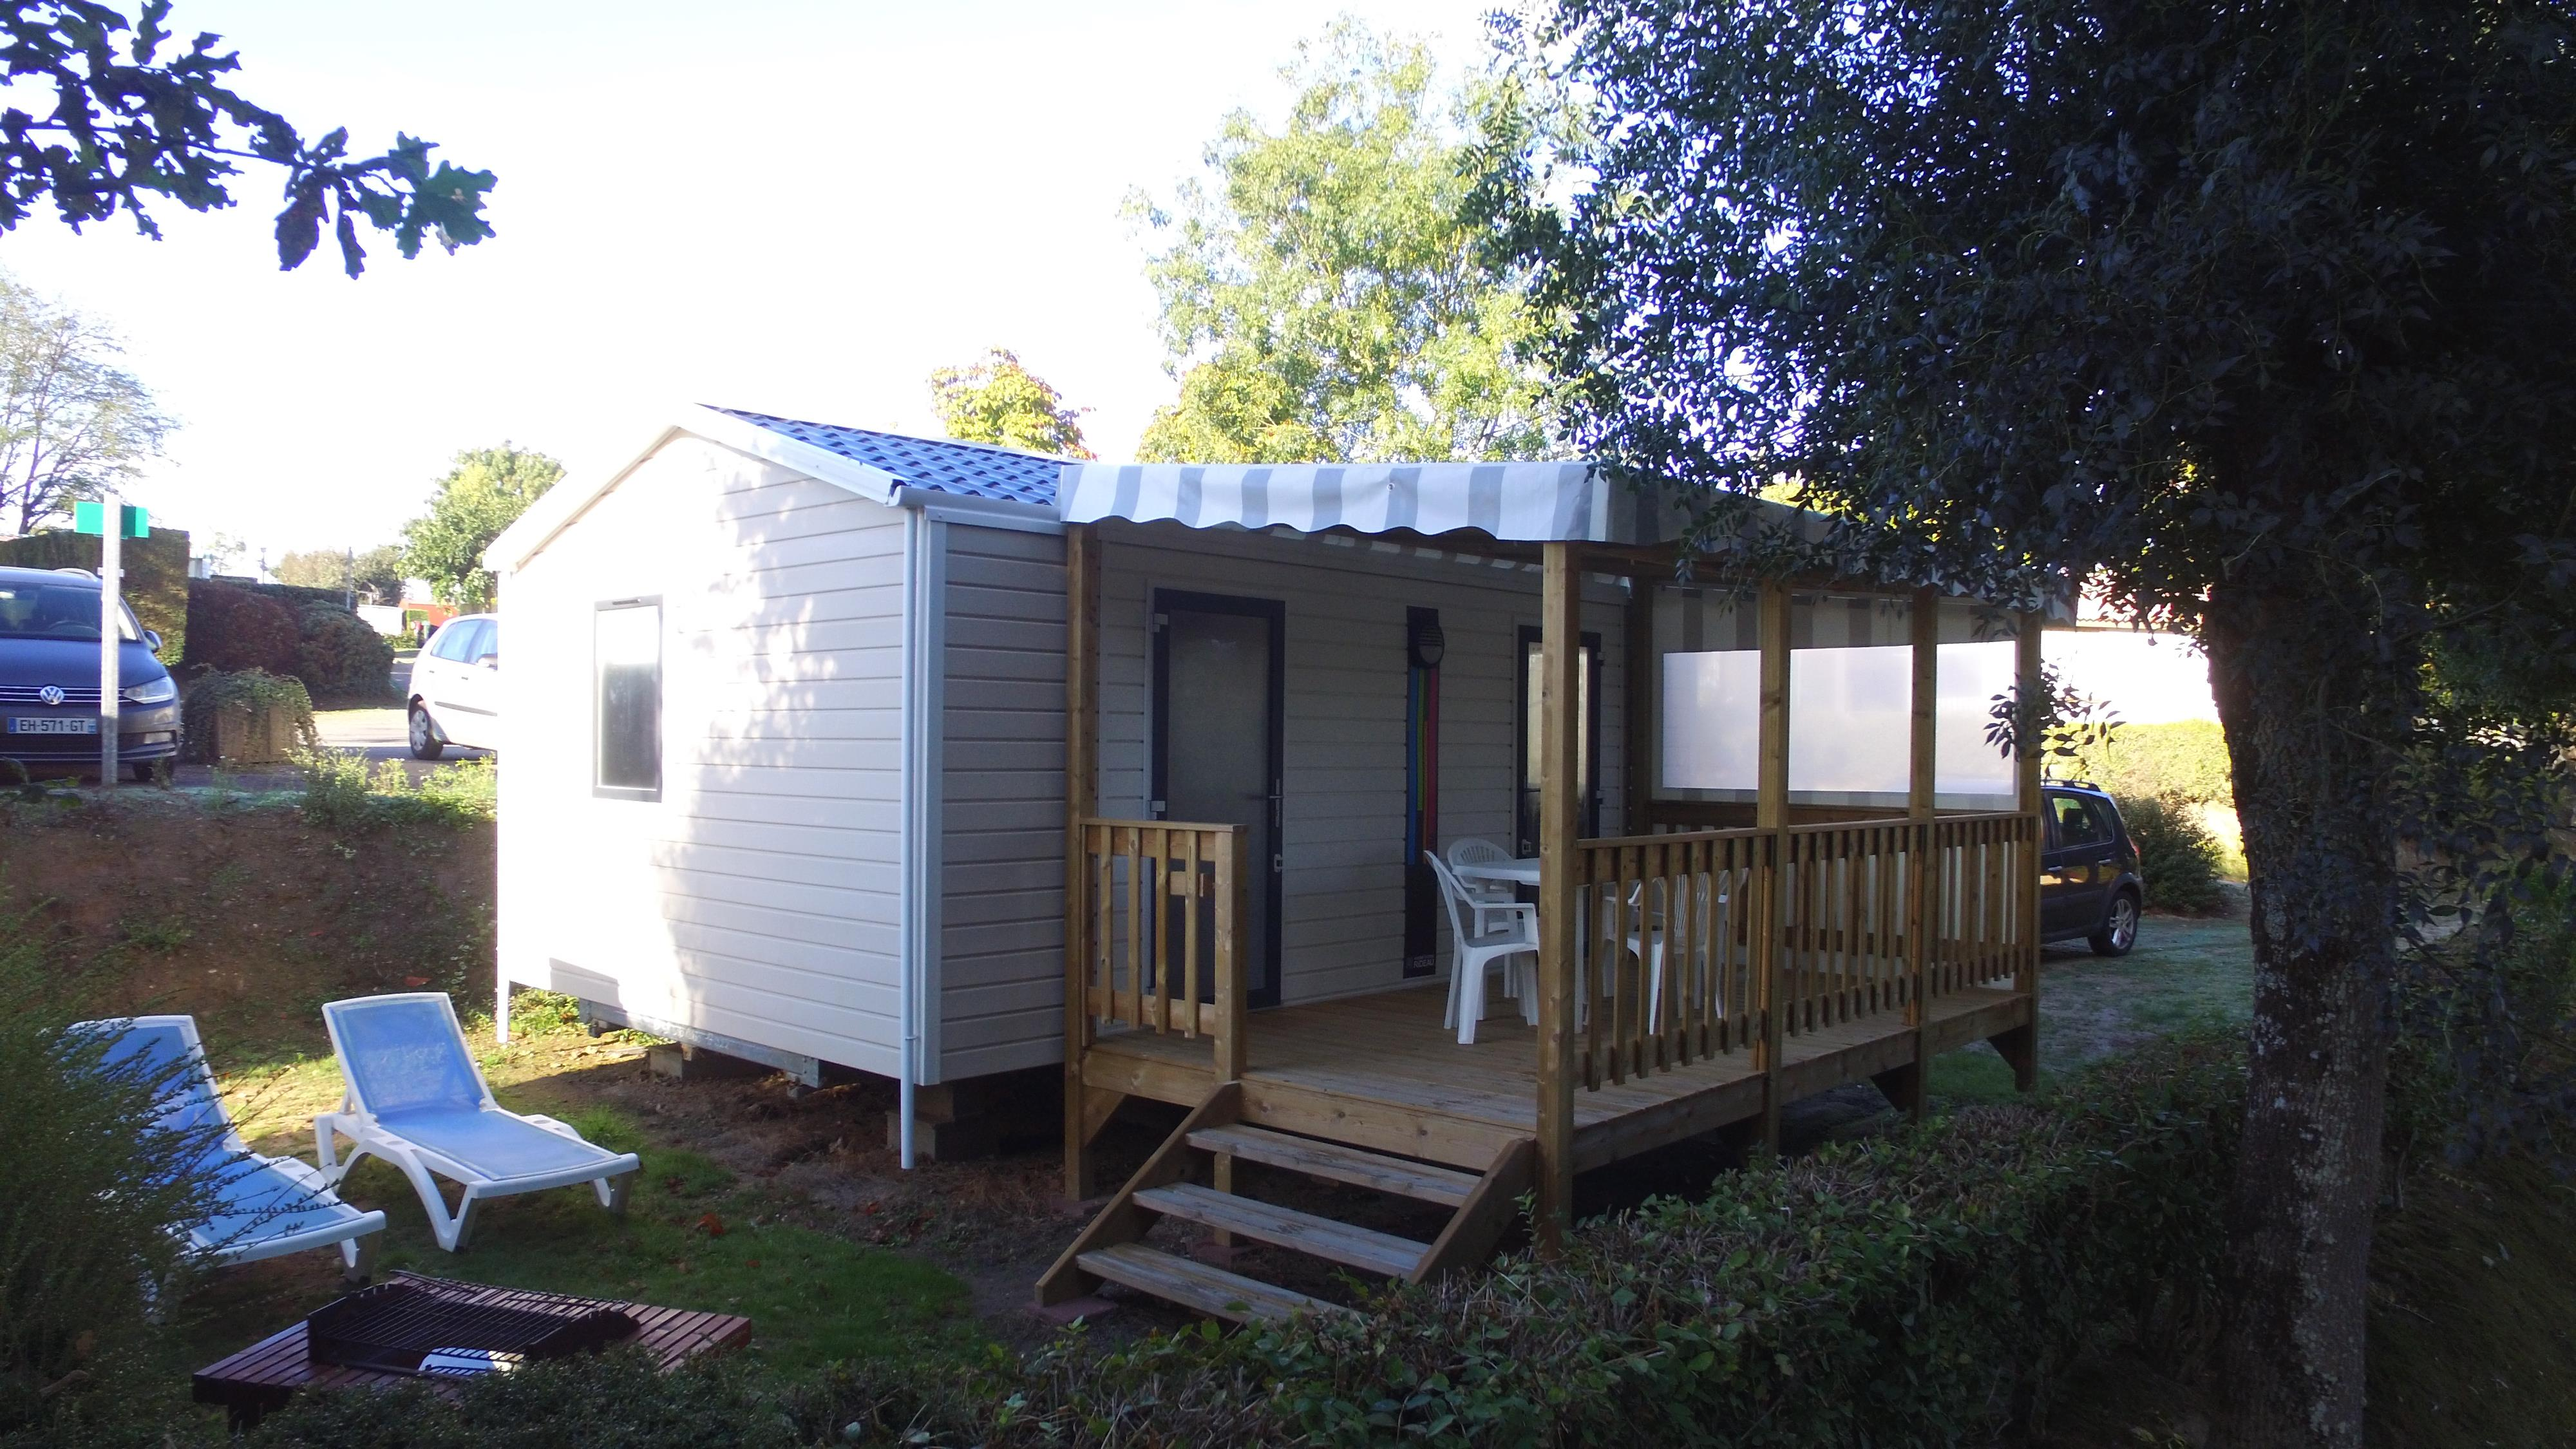 Accommodation - Mobilhome Jonquille 24M² - 1 Room - Camping Les Vallons de l'Océan